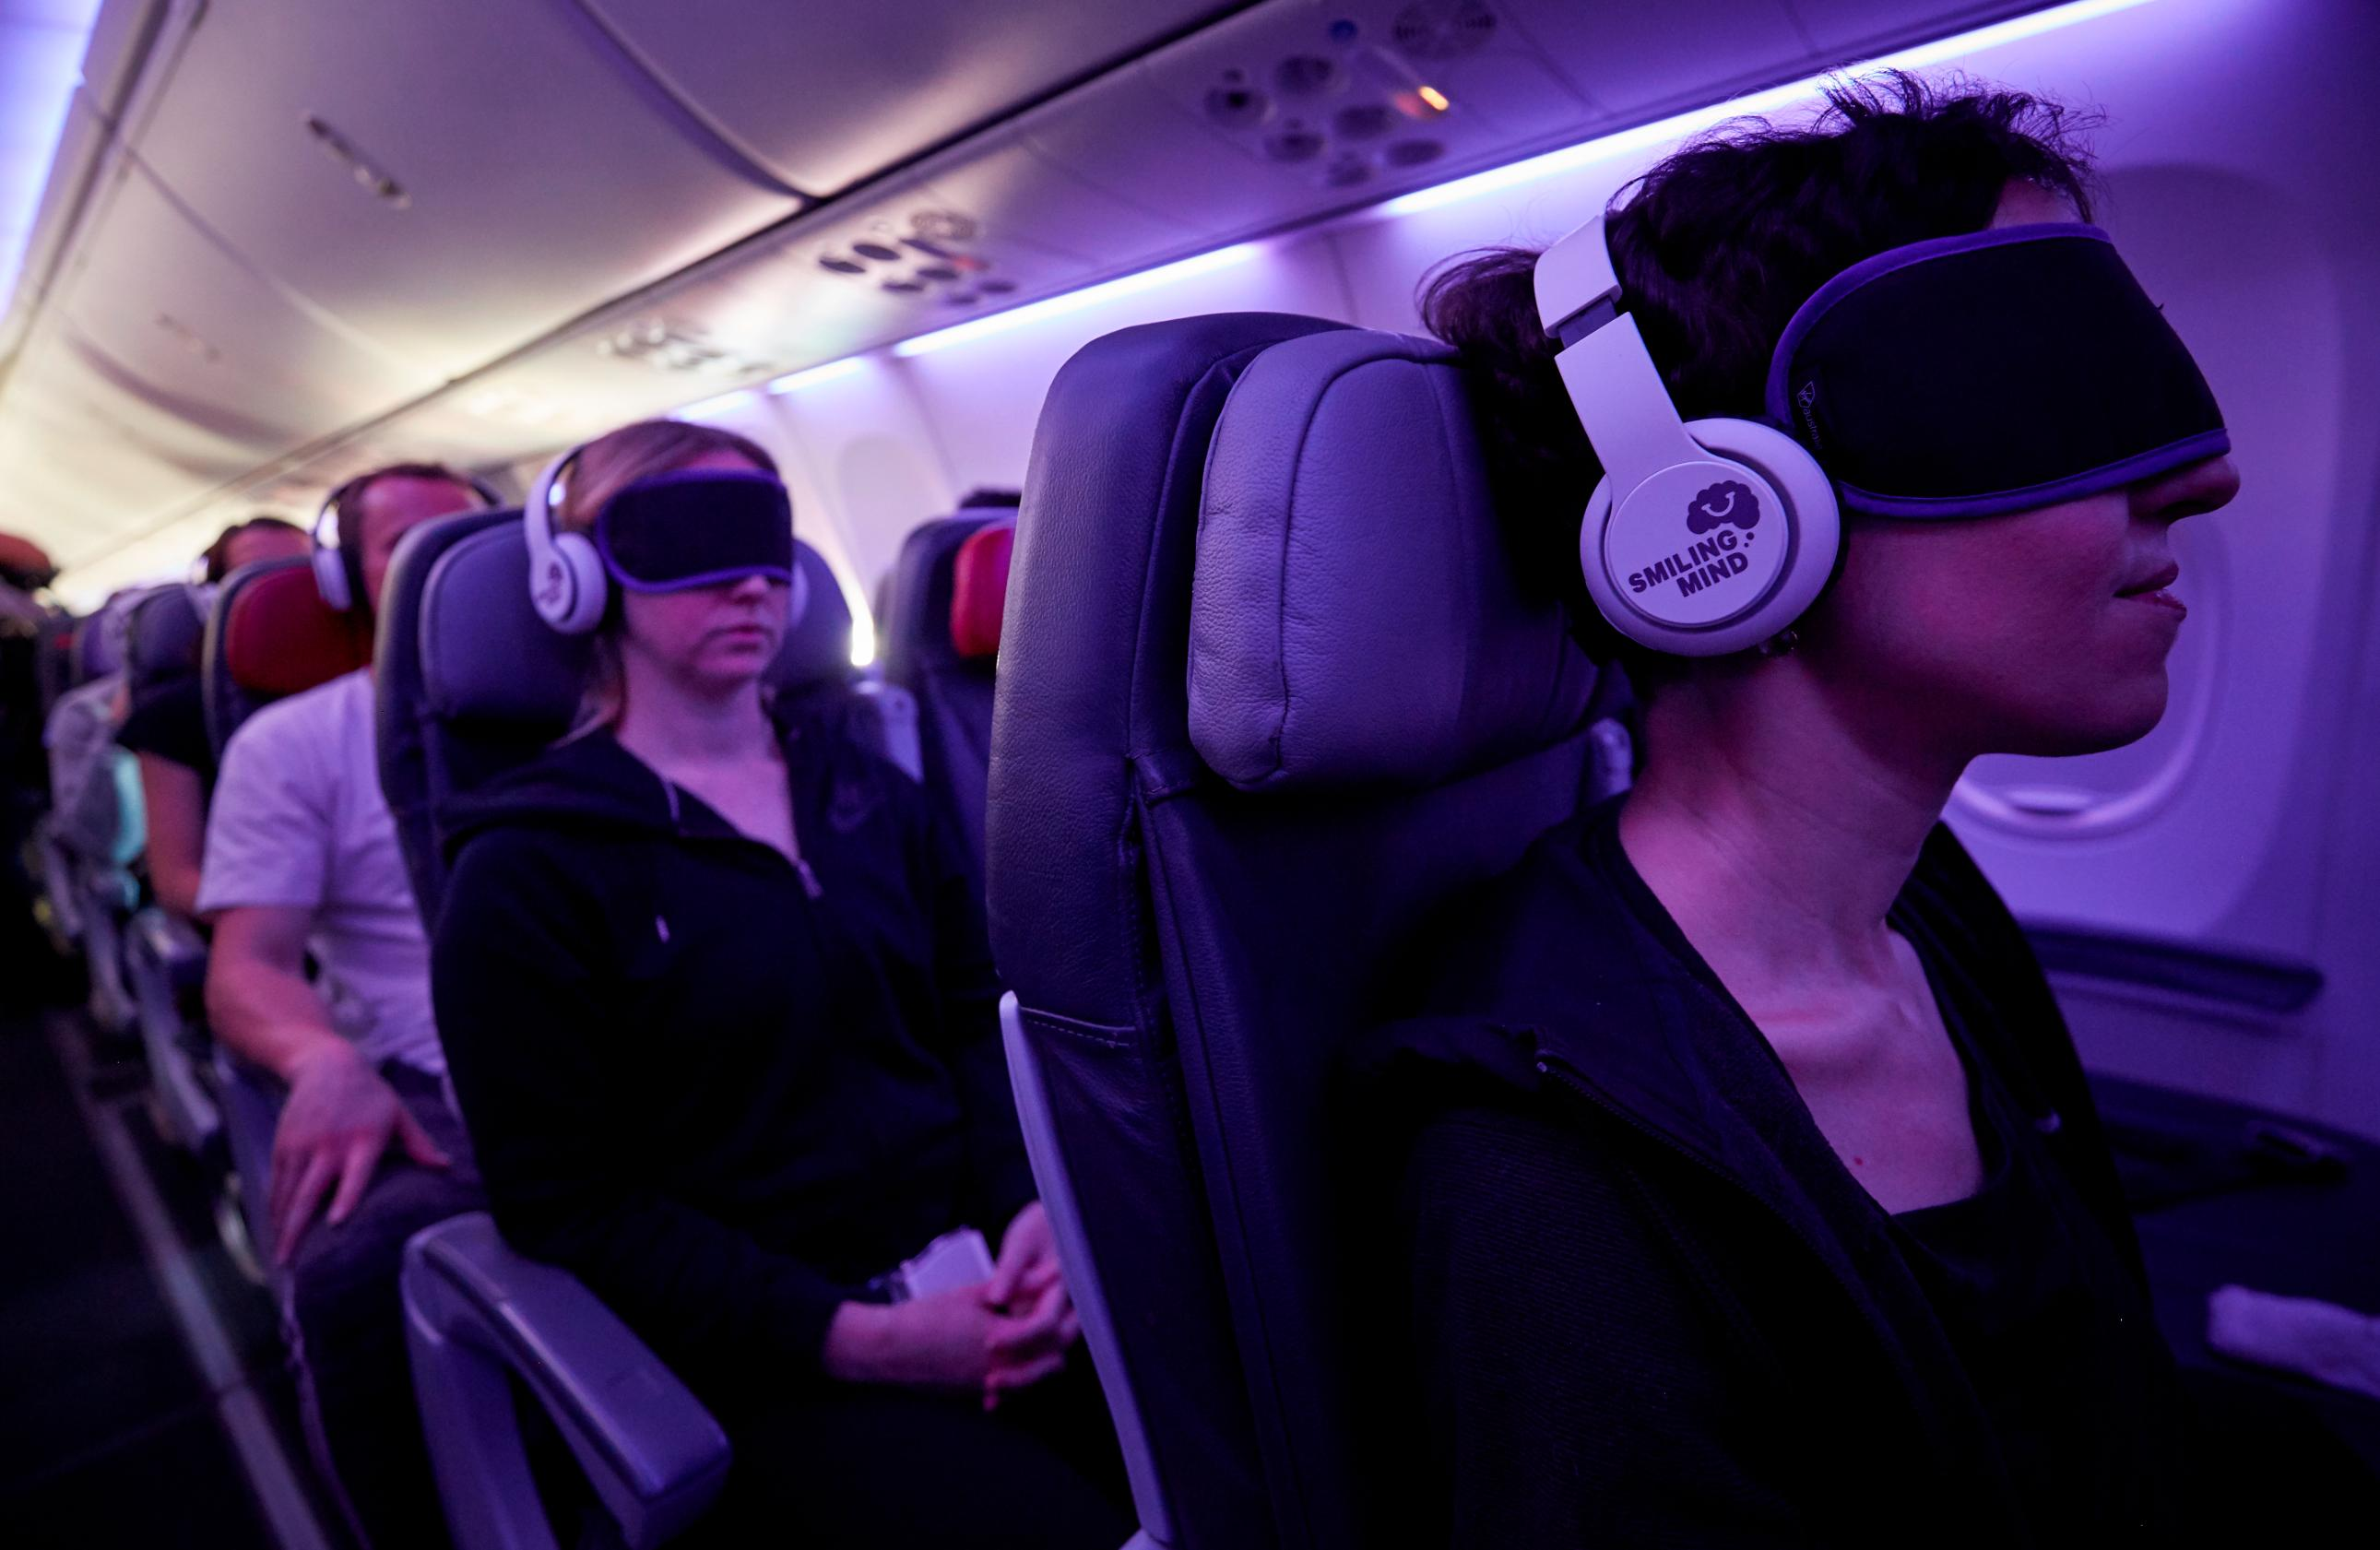 Virgin Australia: This airline wants to help you meditate at 30,000